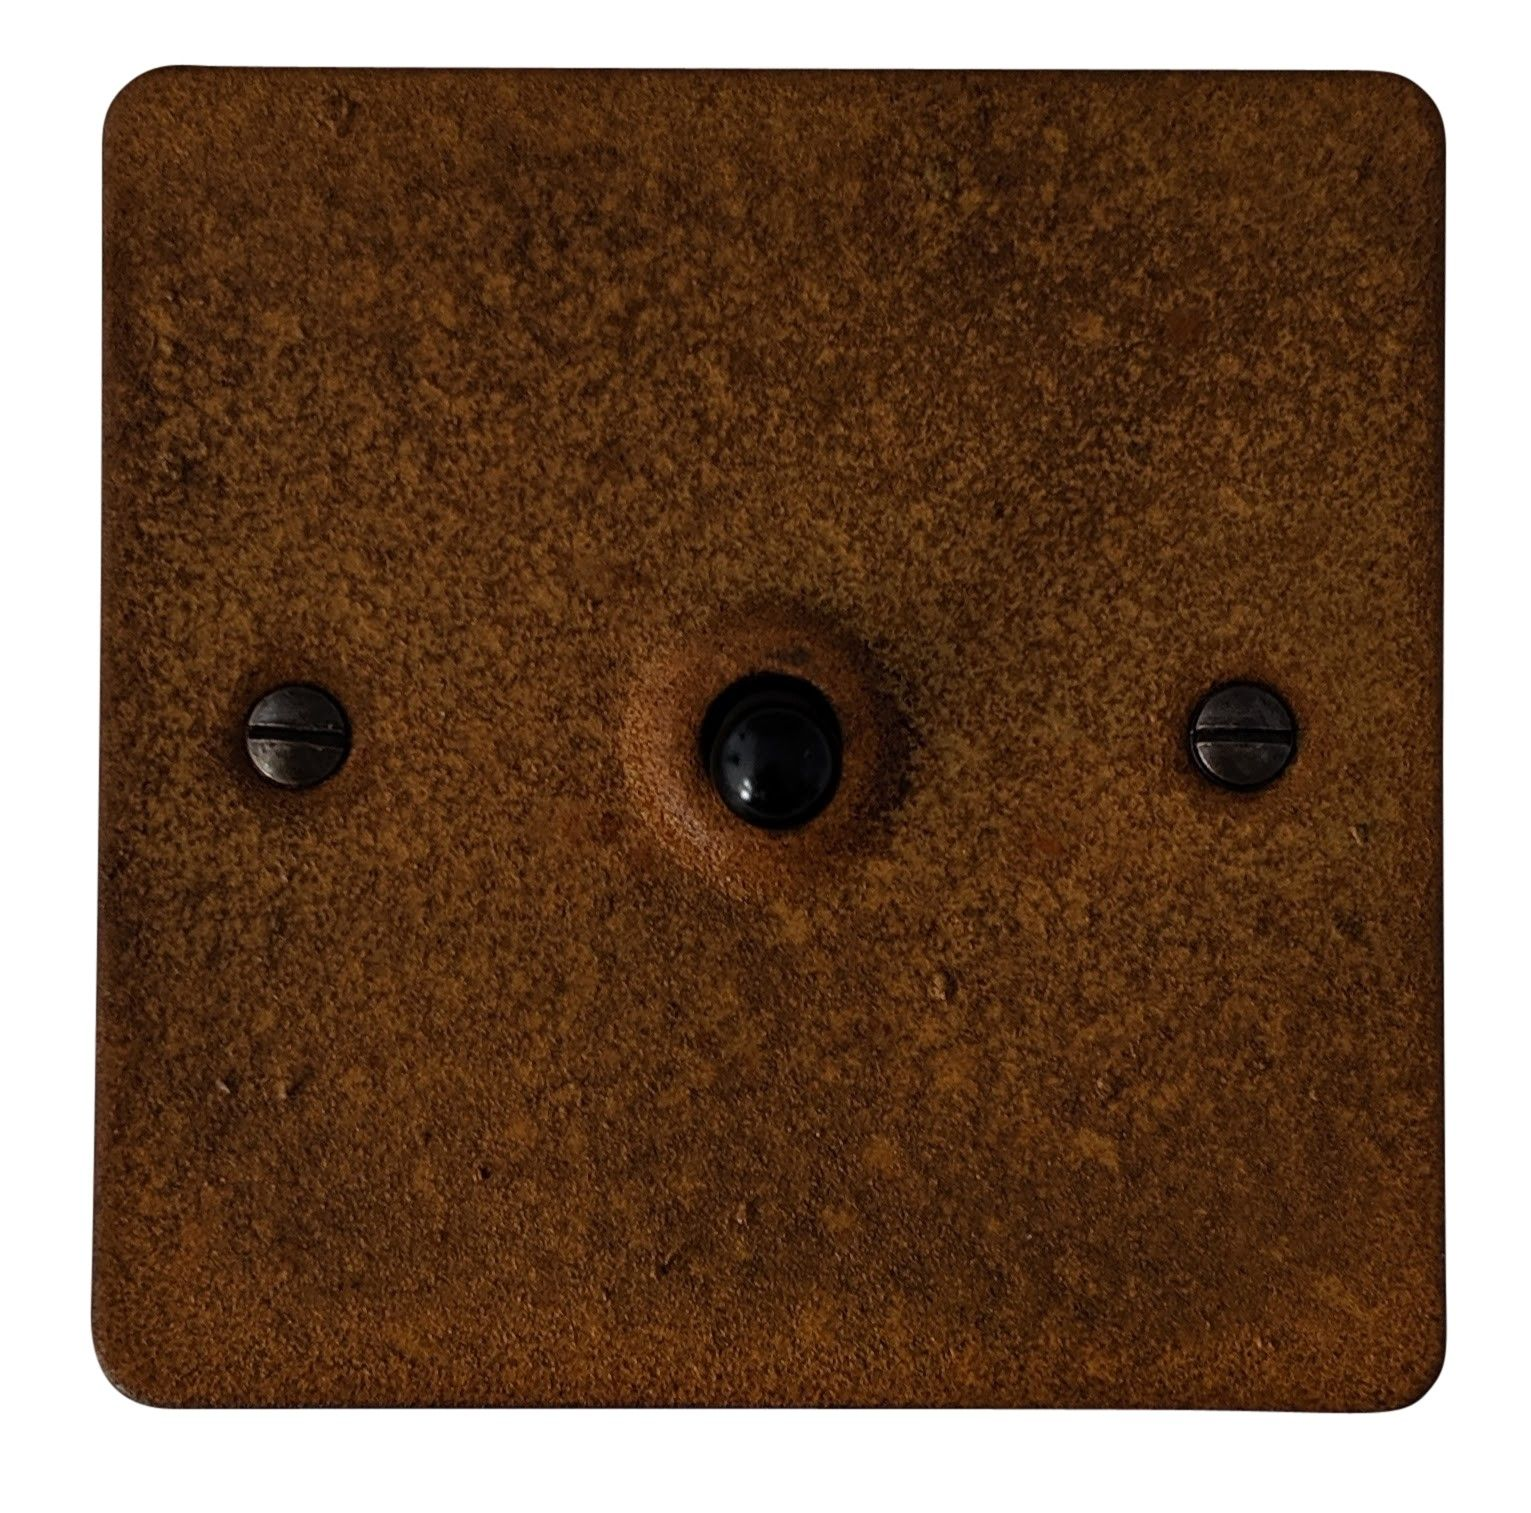 G&H FRT281 Flat Plate Rust 1 Gang 1 or 2 Way Toggle Light Switch